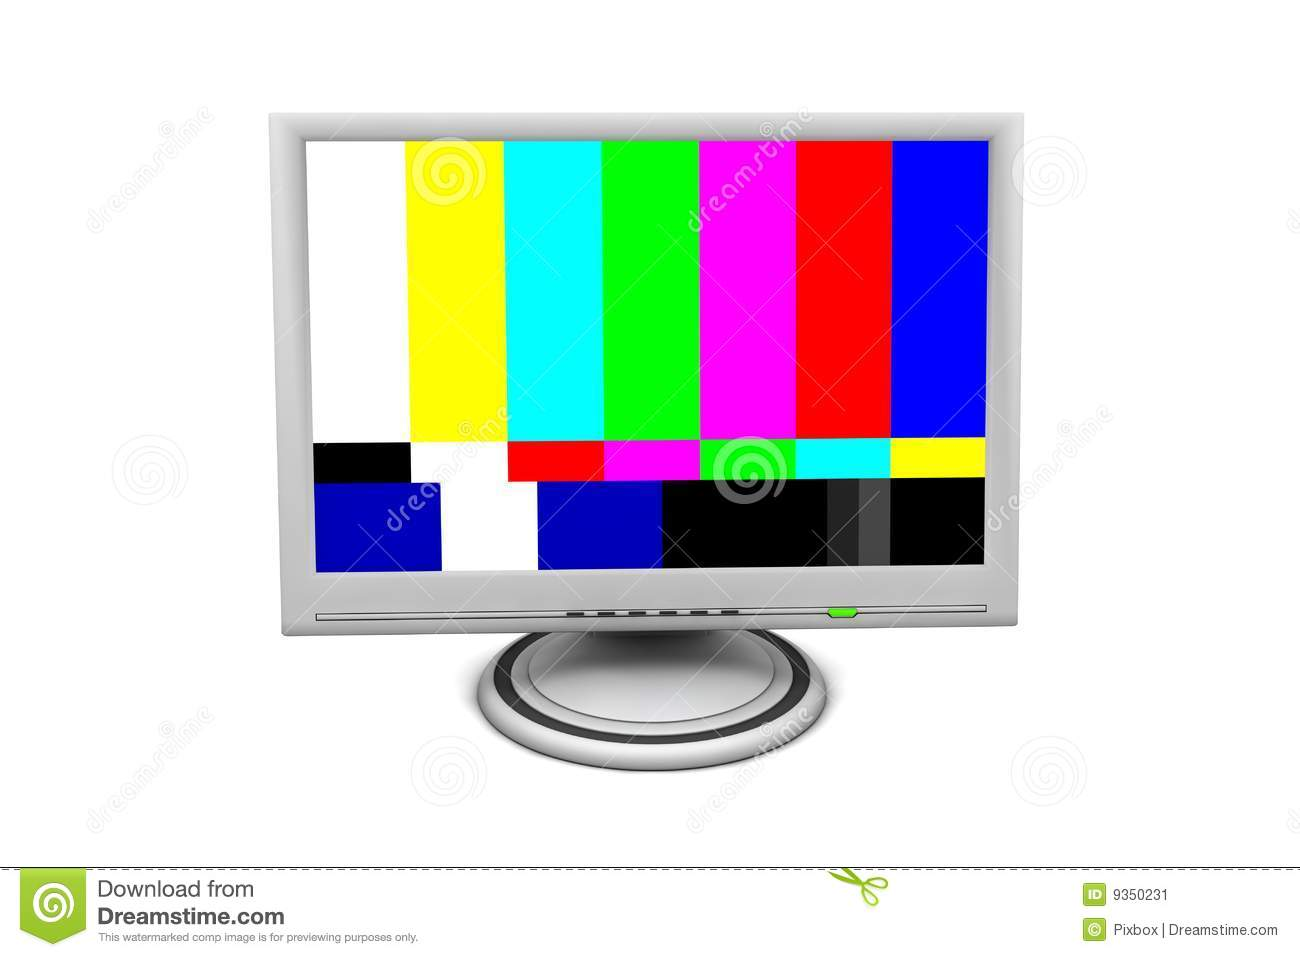 Lcd Flatscreen Monitor Test Pattern Photos - Free & Royalty-Free